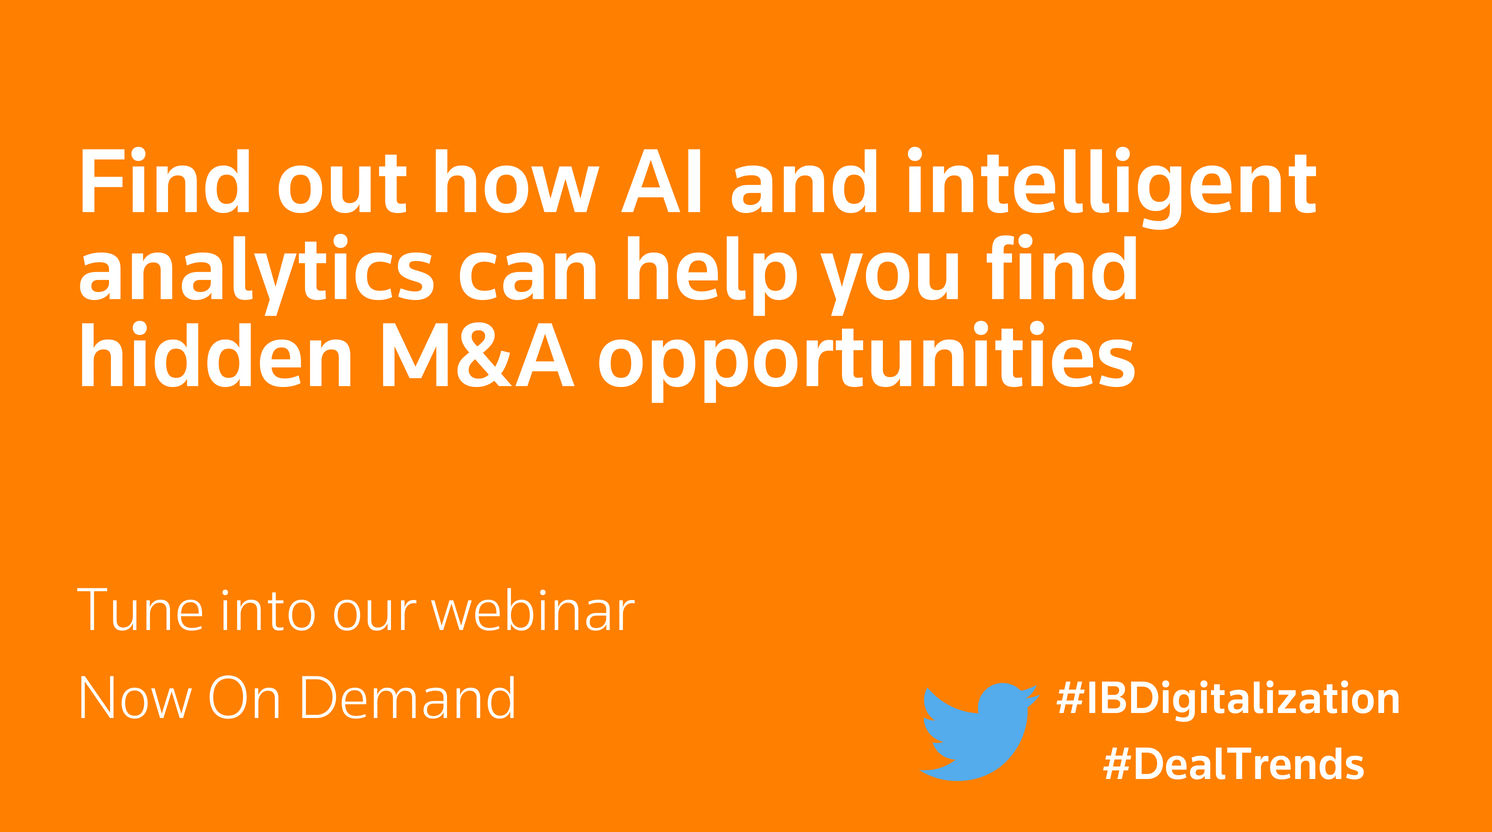 Find out how AI and intelligent analytics can help you find hidden M&A opportunities